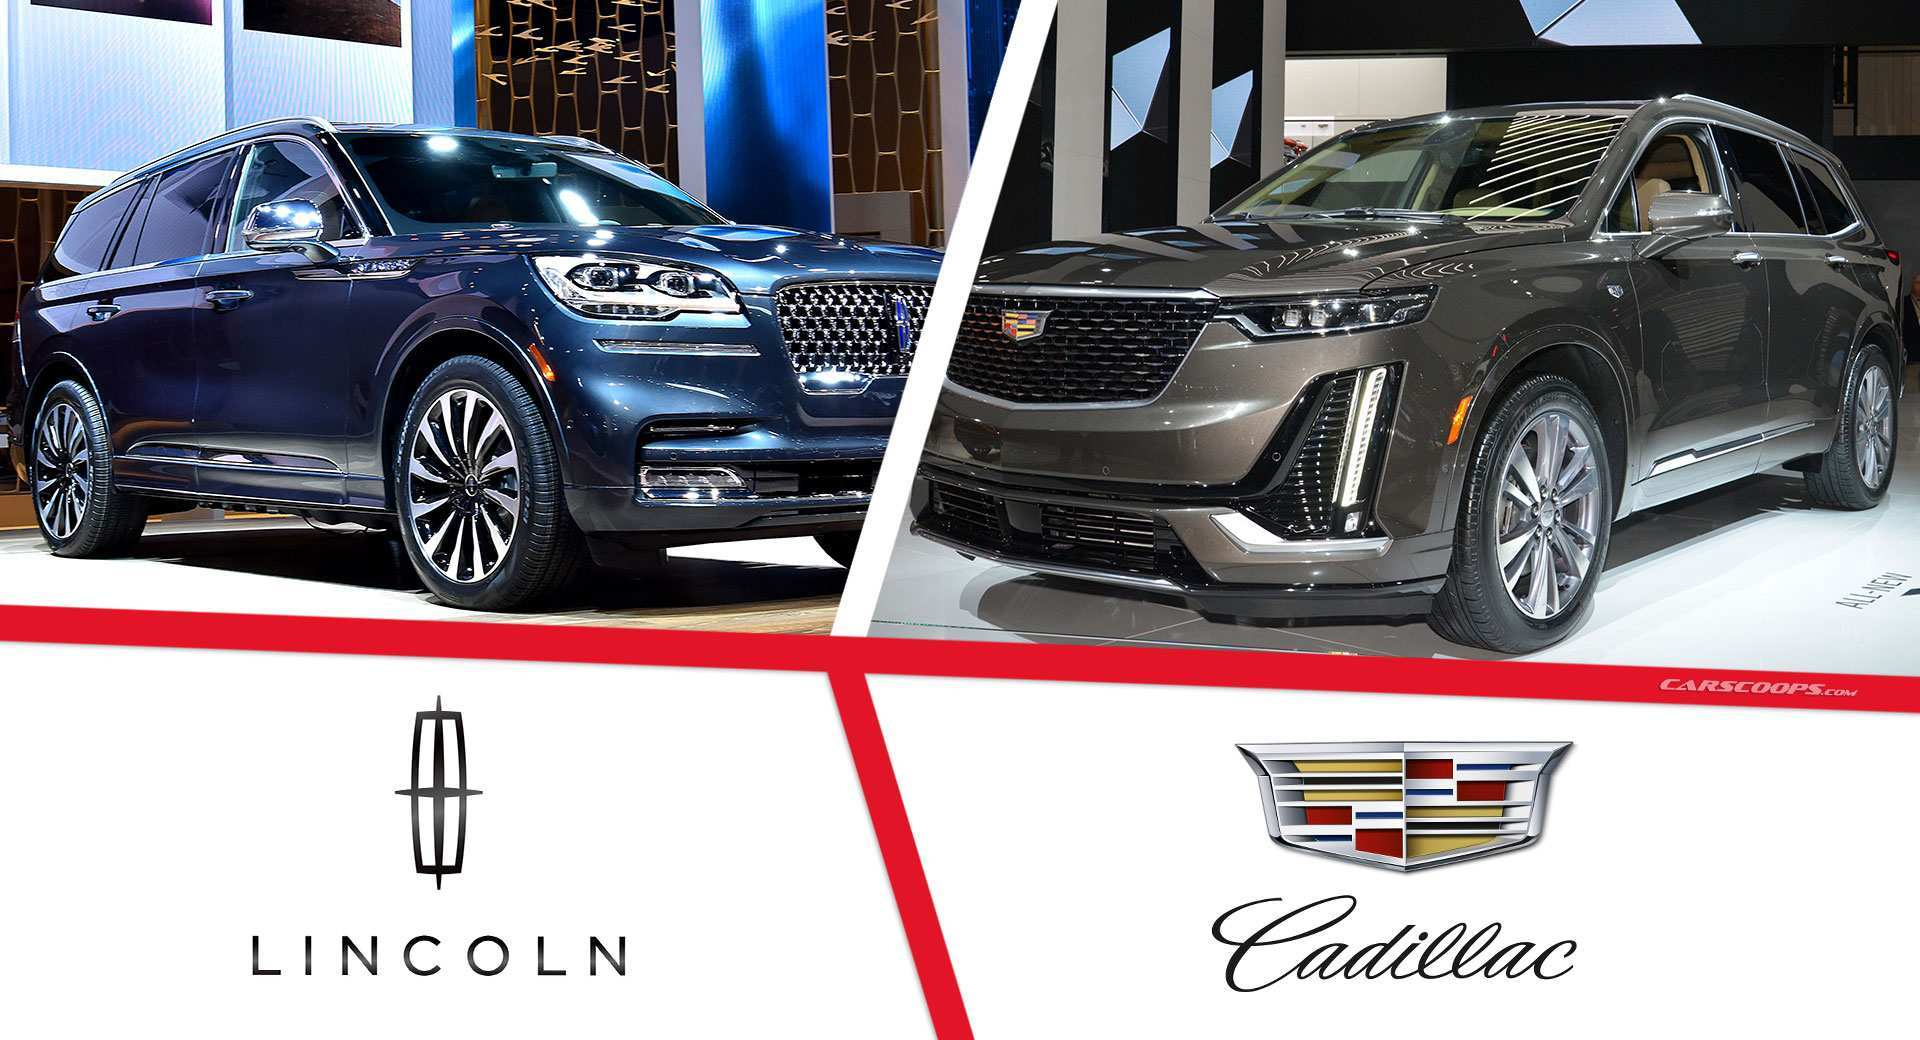 88 Gallery of 2020 Lincoln Aviator Vs Cadillac Xt6 Picture for 2020 Lincoln Aviator Vs Cadillac Xt6